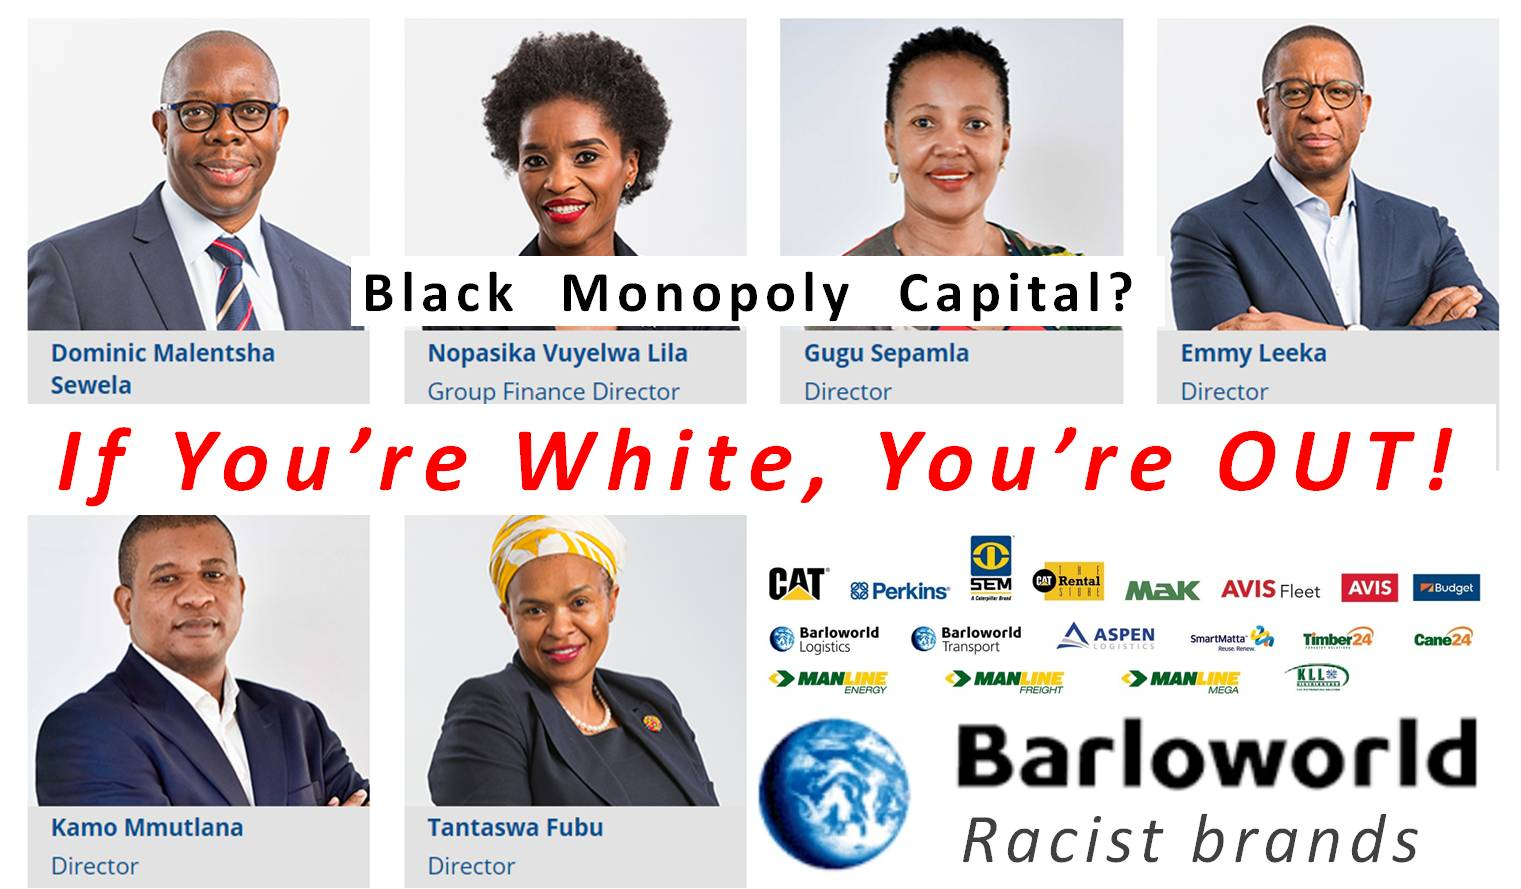 Barloworld racist black monopoly capital